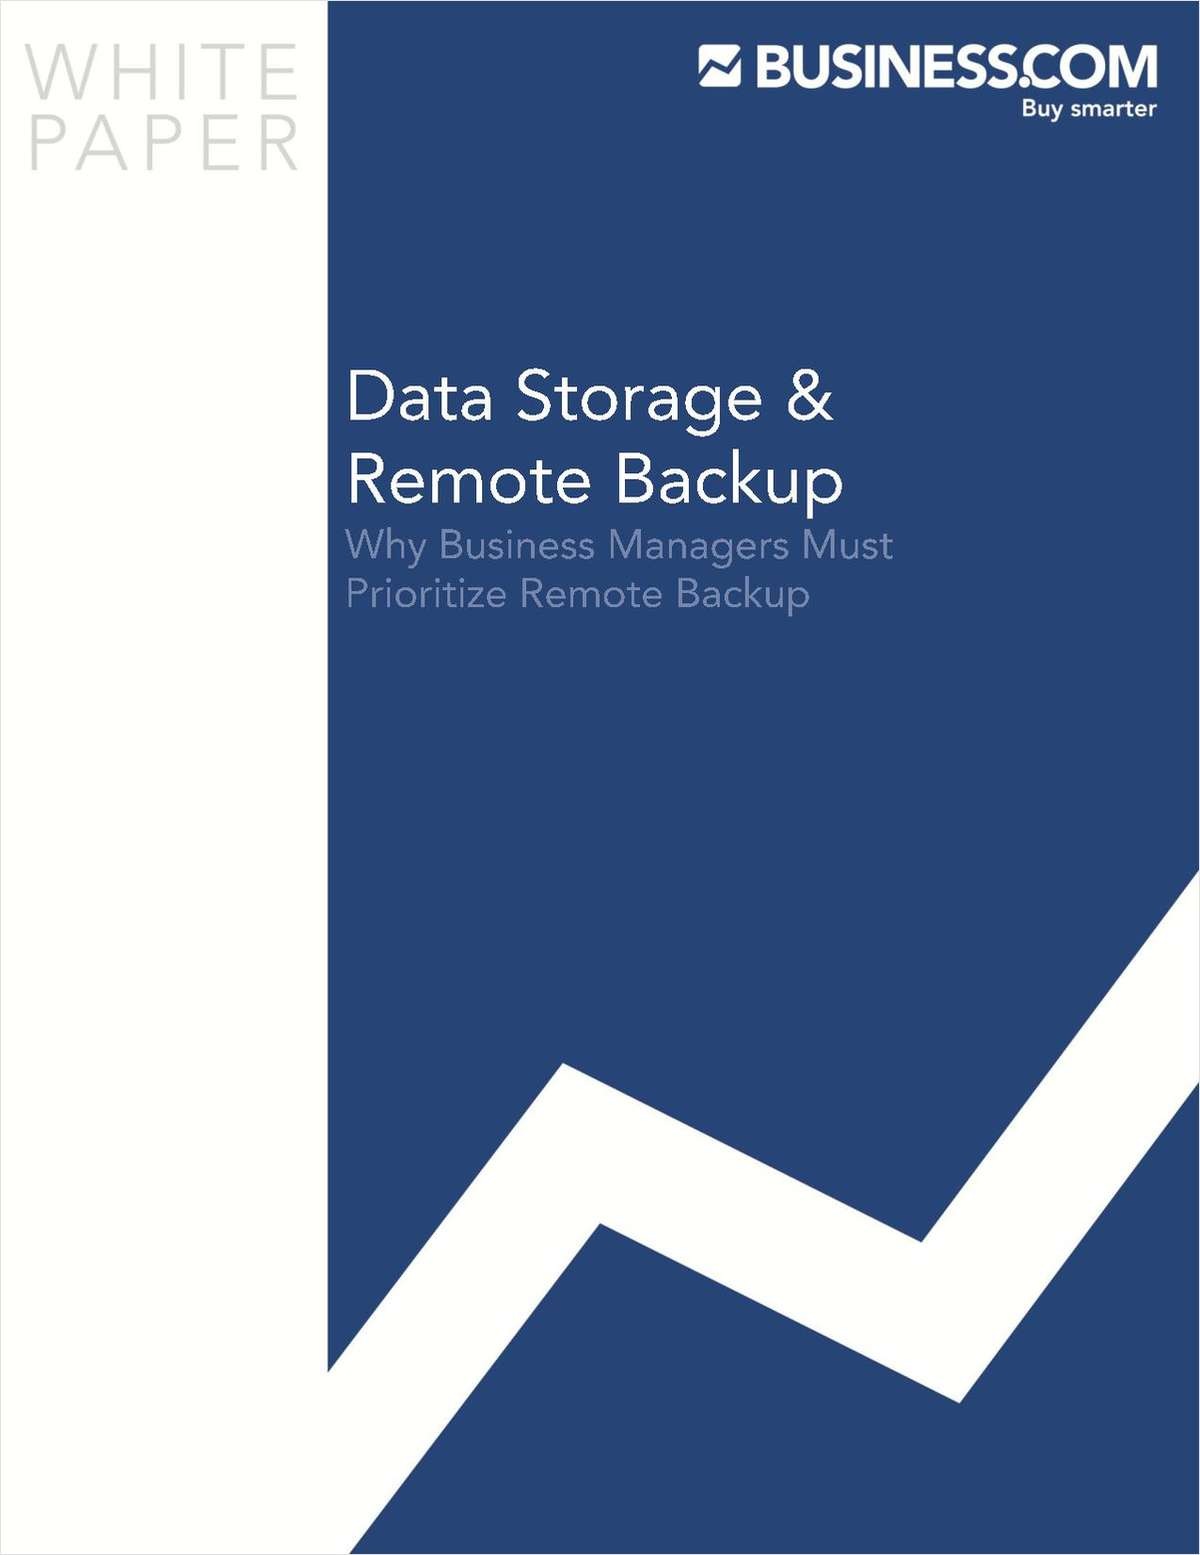 Guide to Preventing Catastrophic Failures & Data Loss by Using Remote Backup Systems